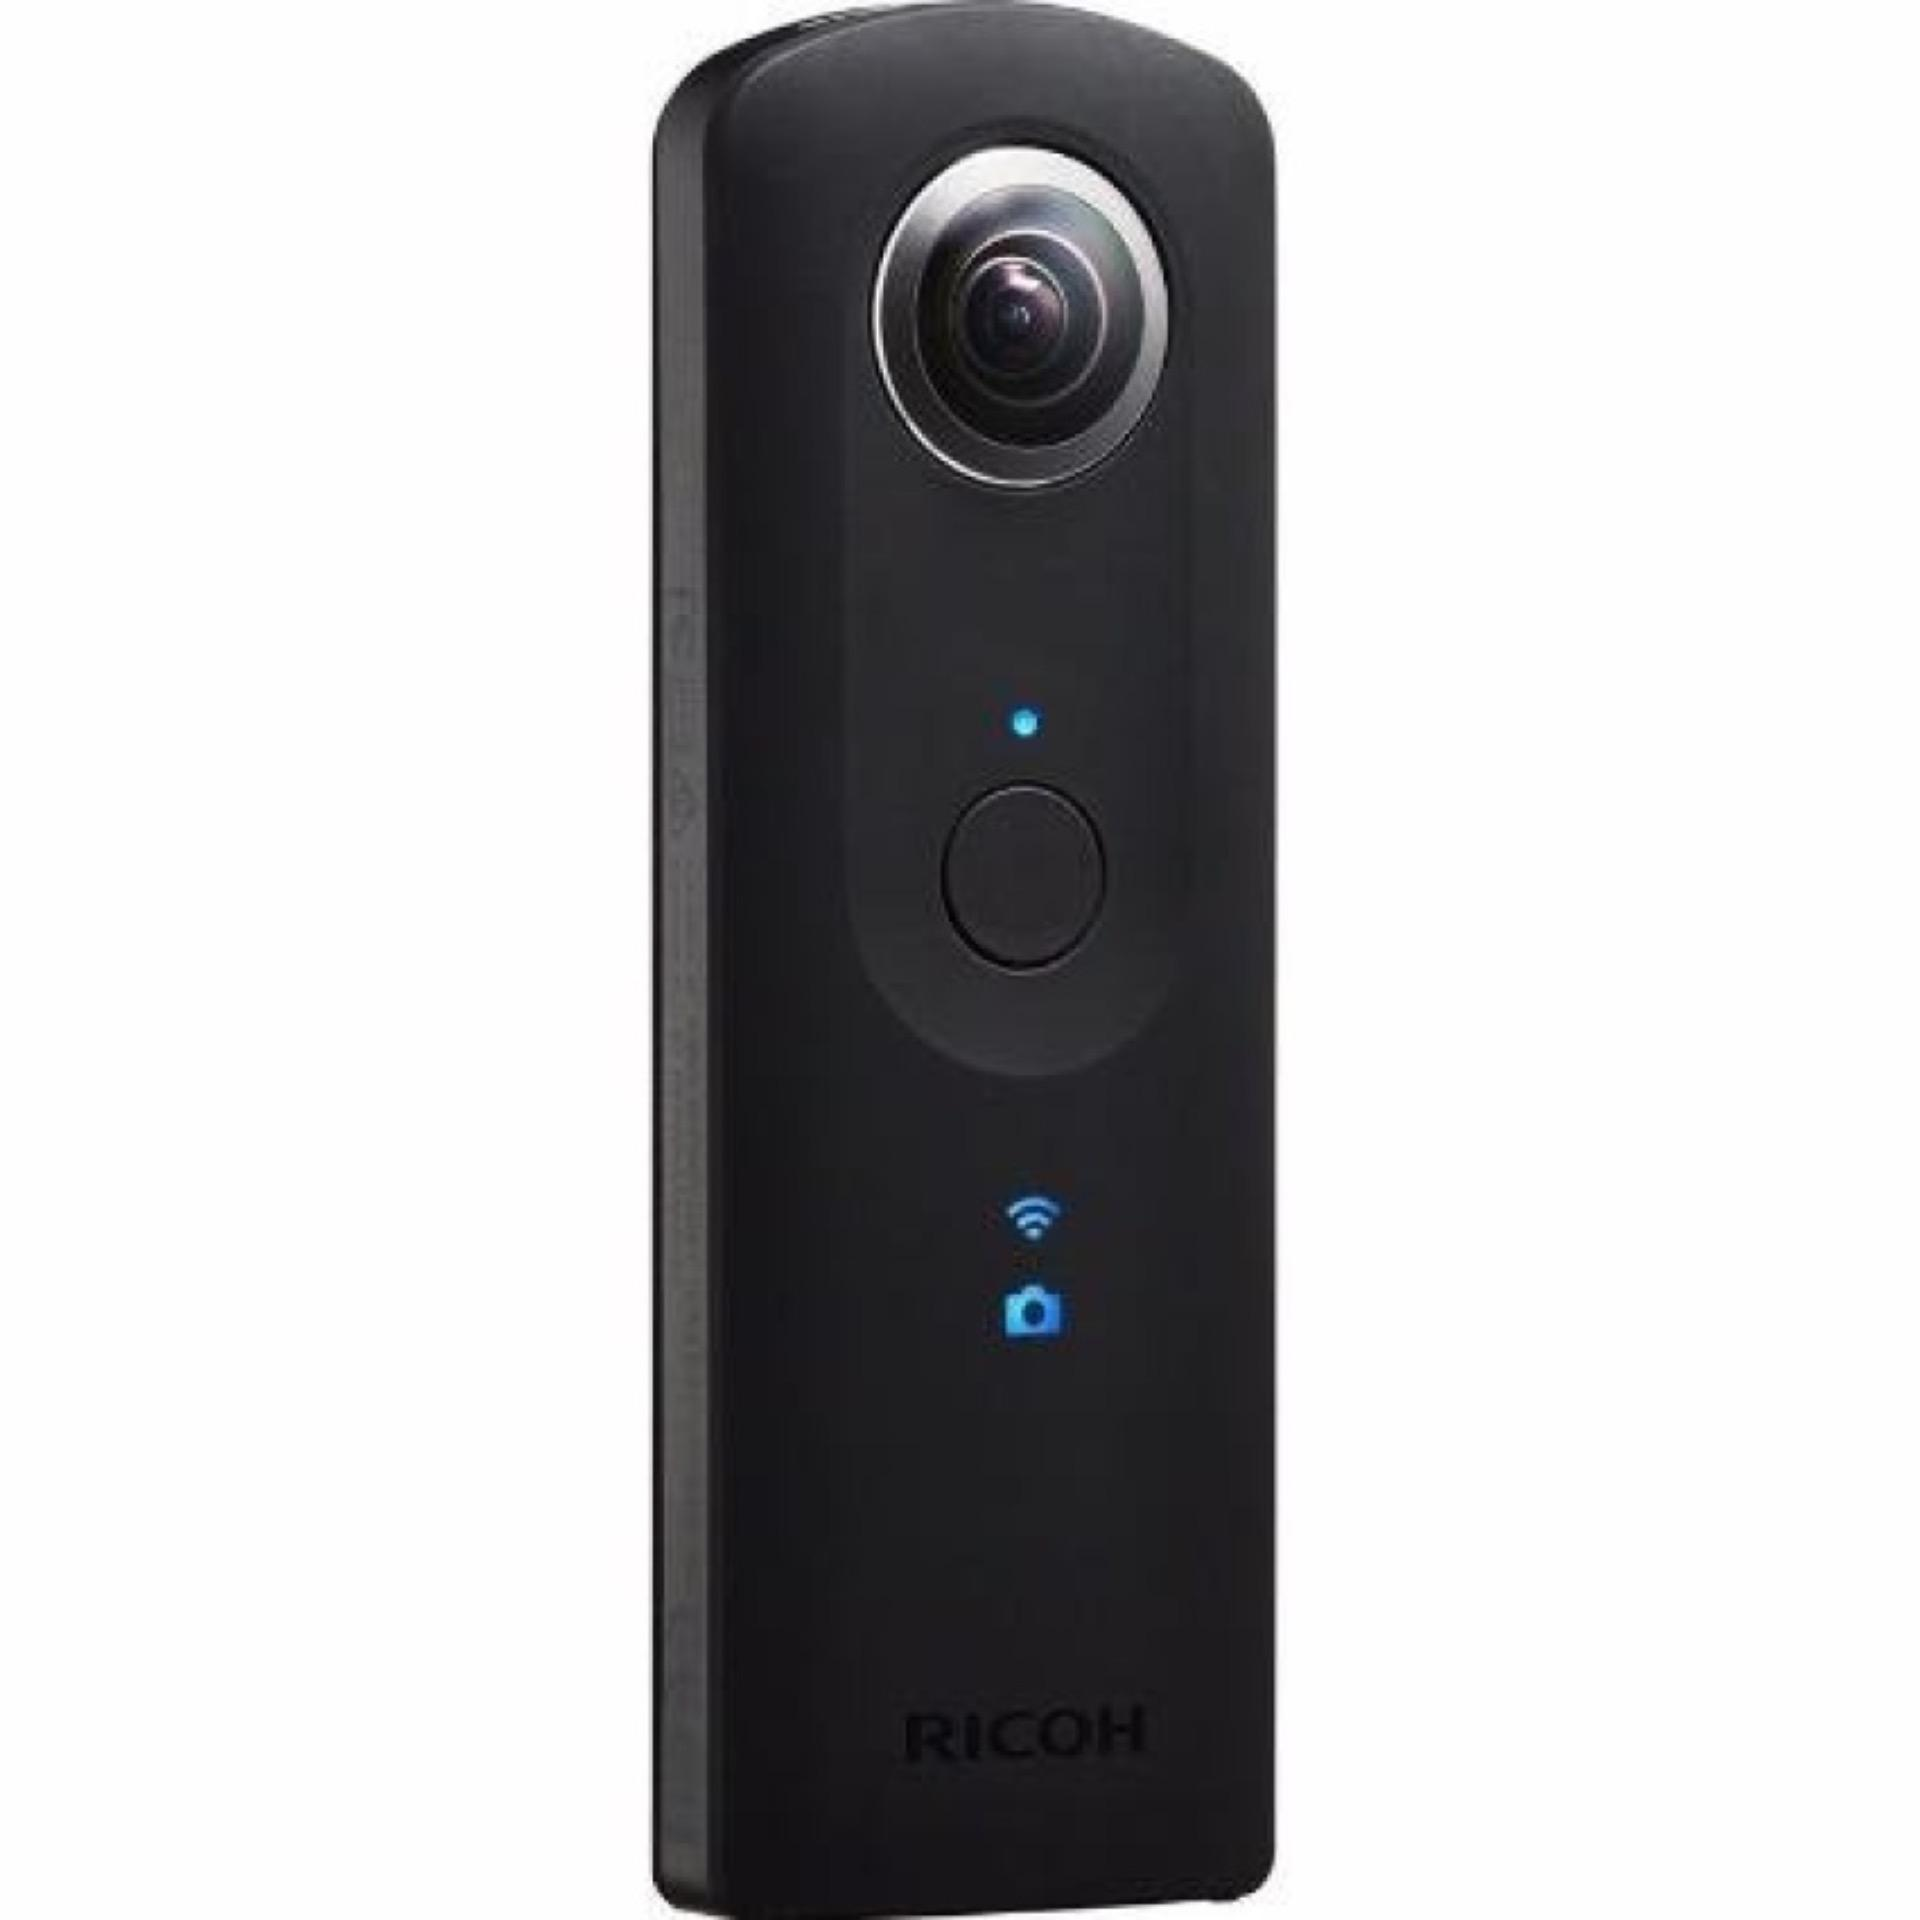 Ricoh Theta S 360° Spherical Camera with 1Year Local Warranty